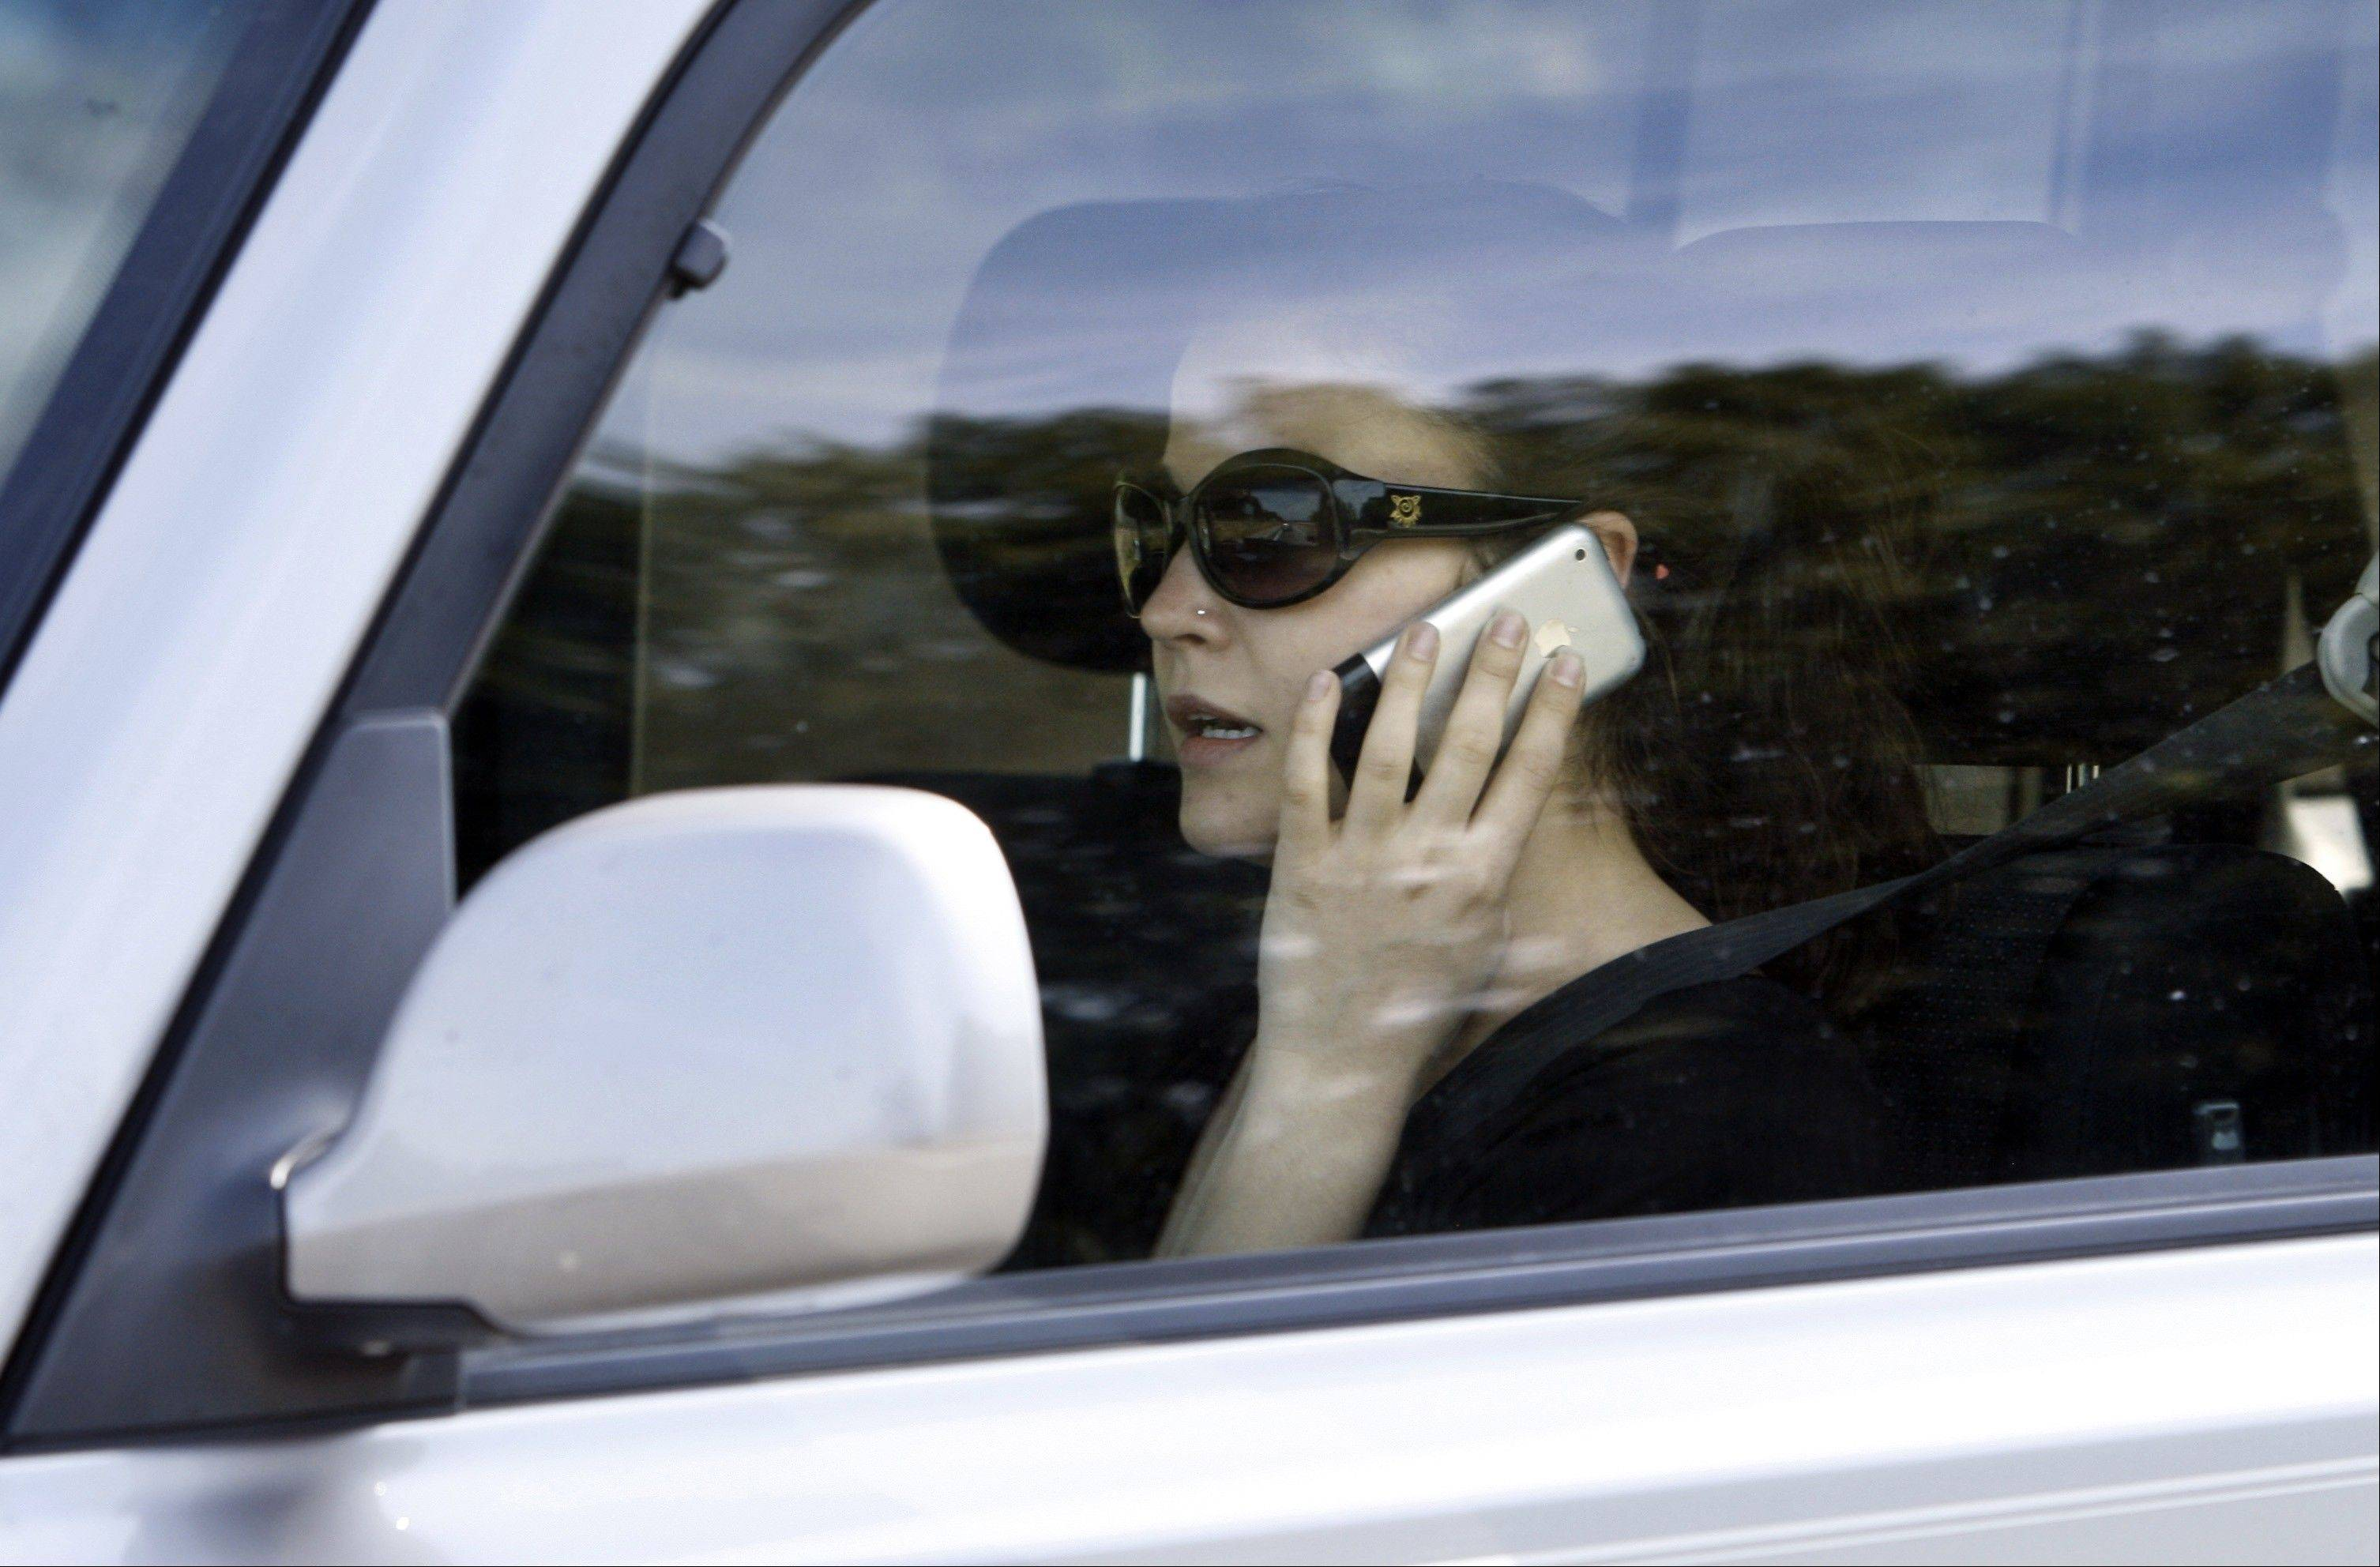 The Illinois House Friday voted to make it illegal to talk on a handheld cellphone while driving. The proposal now goes to the state Senate. Supporters argued reducing distractions for drivers could prevent wrecks and deaths behind the wheel.